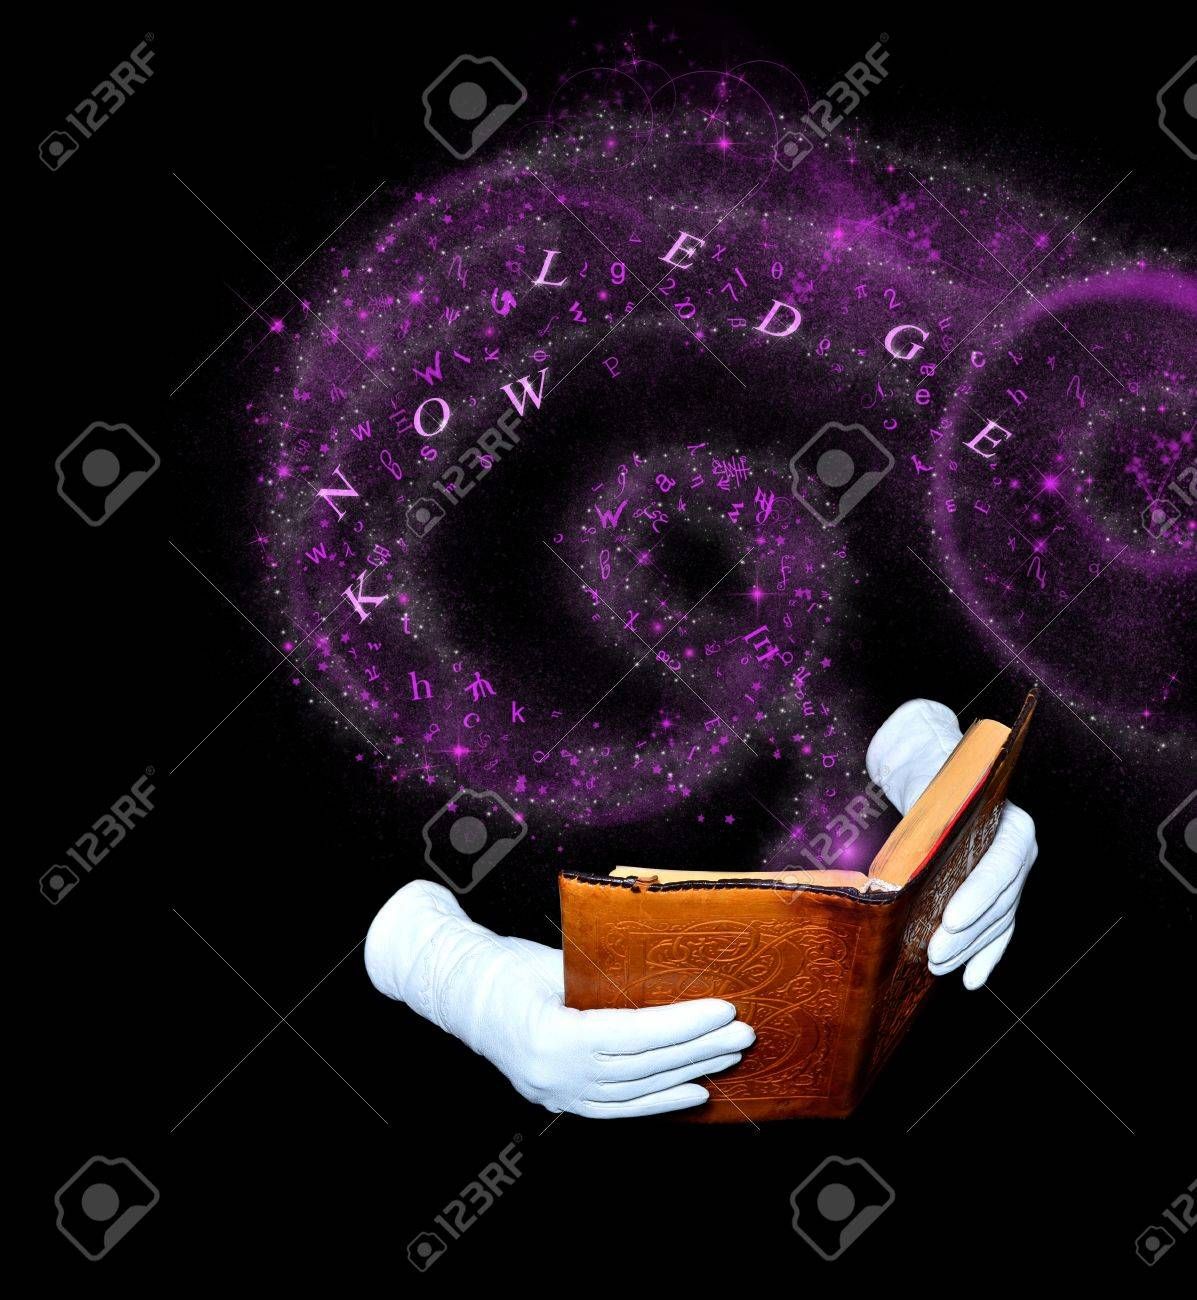 Magic book in leather-bound held by hands in white gloves Stock Photo - 13581792